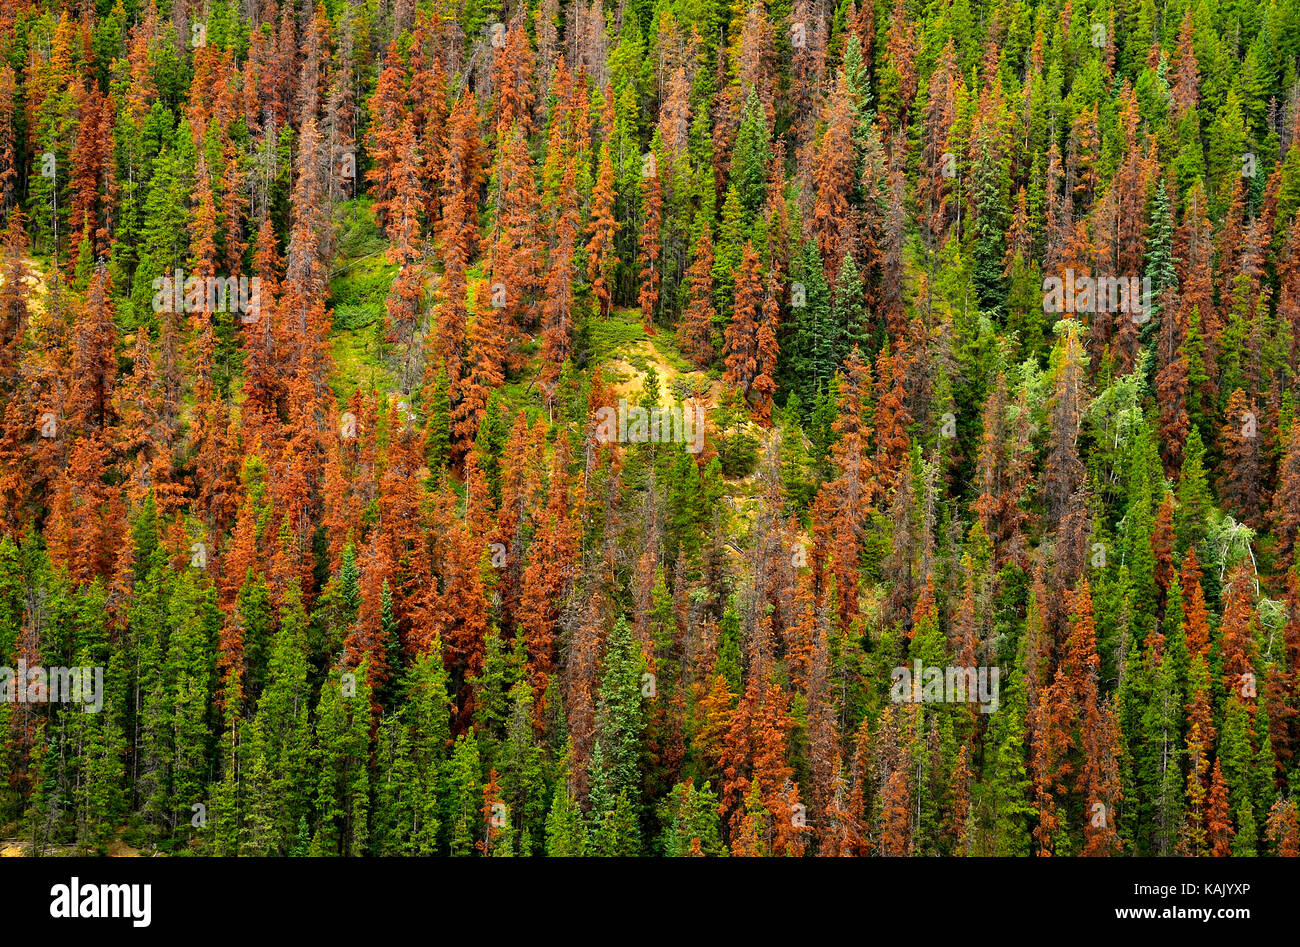 Red pine trees on a mountain side, dead from the pine beetle infestation in Jasper National Park Alberta Canada - Stock Image